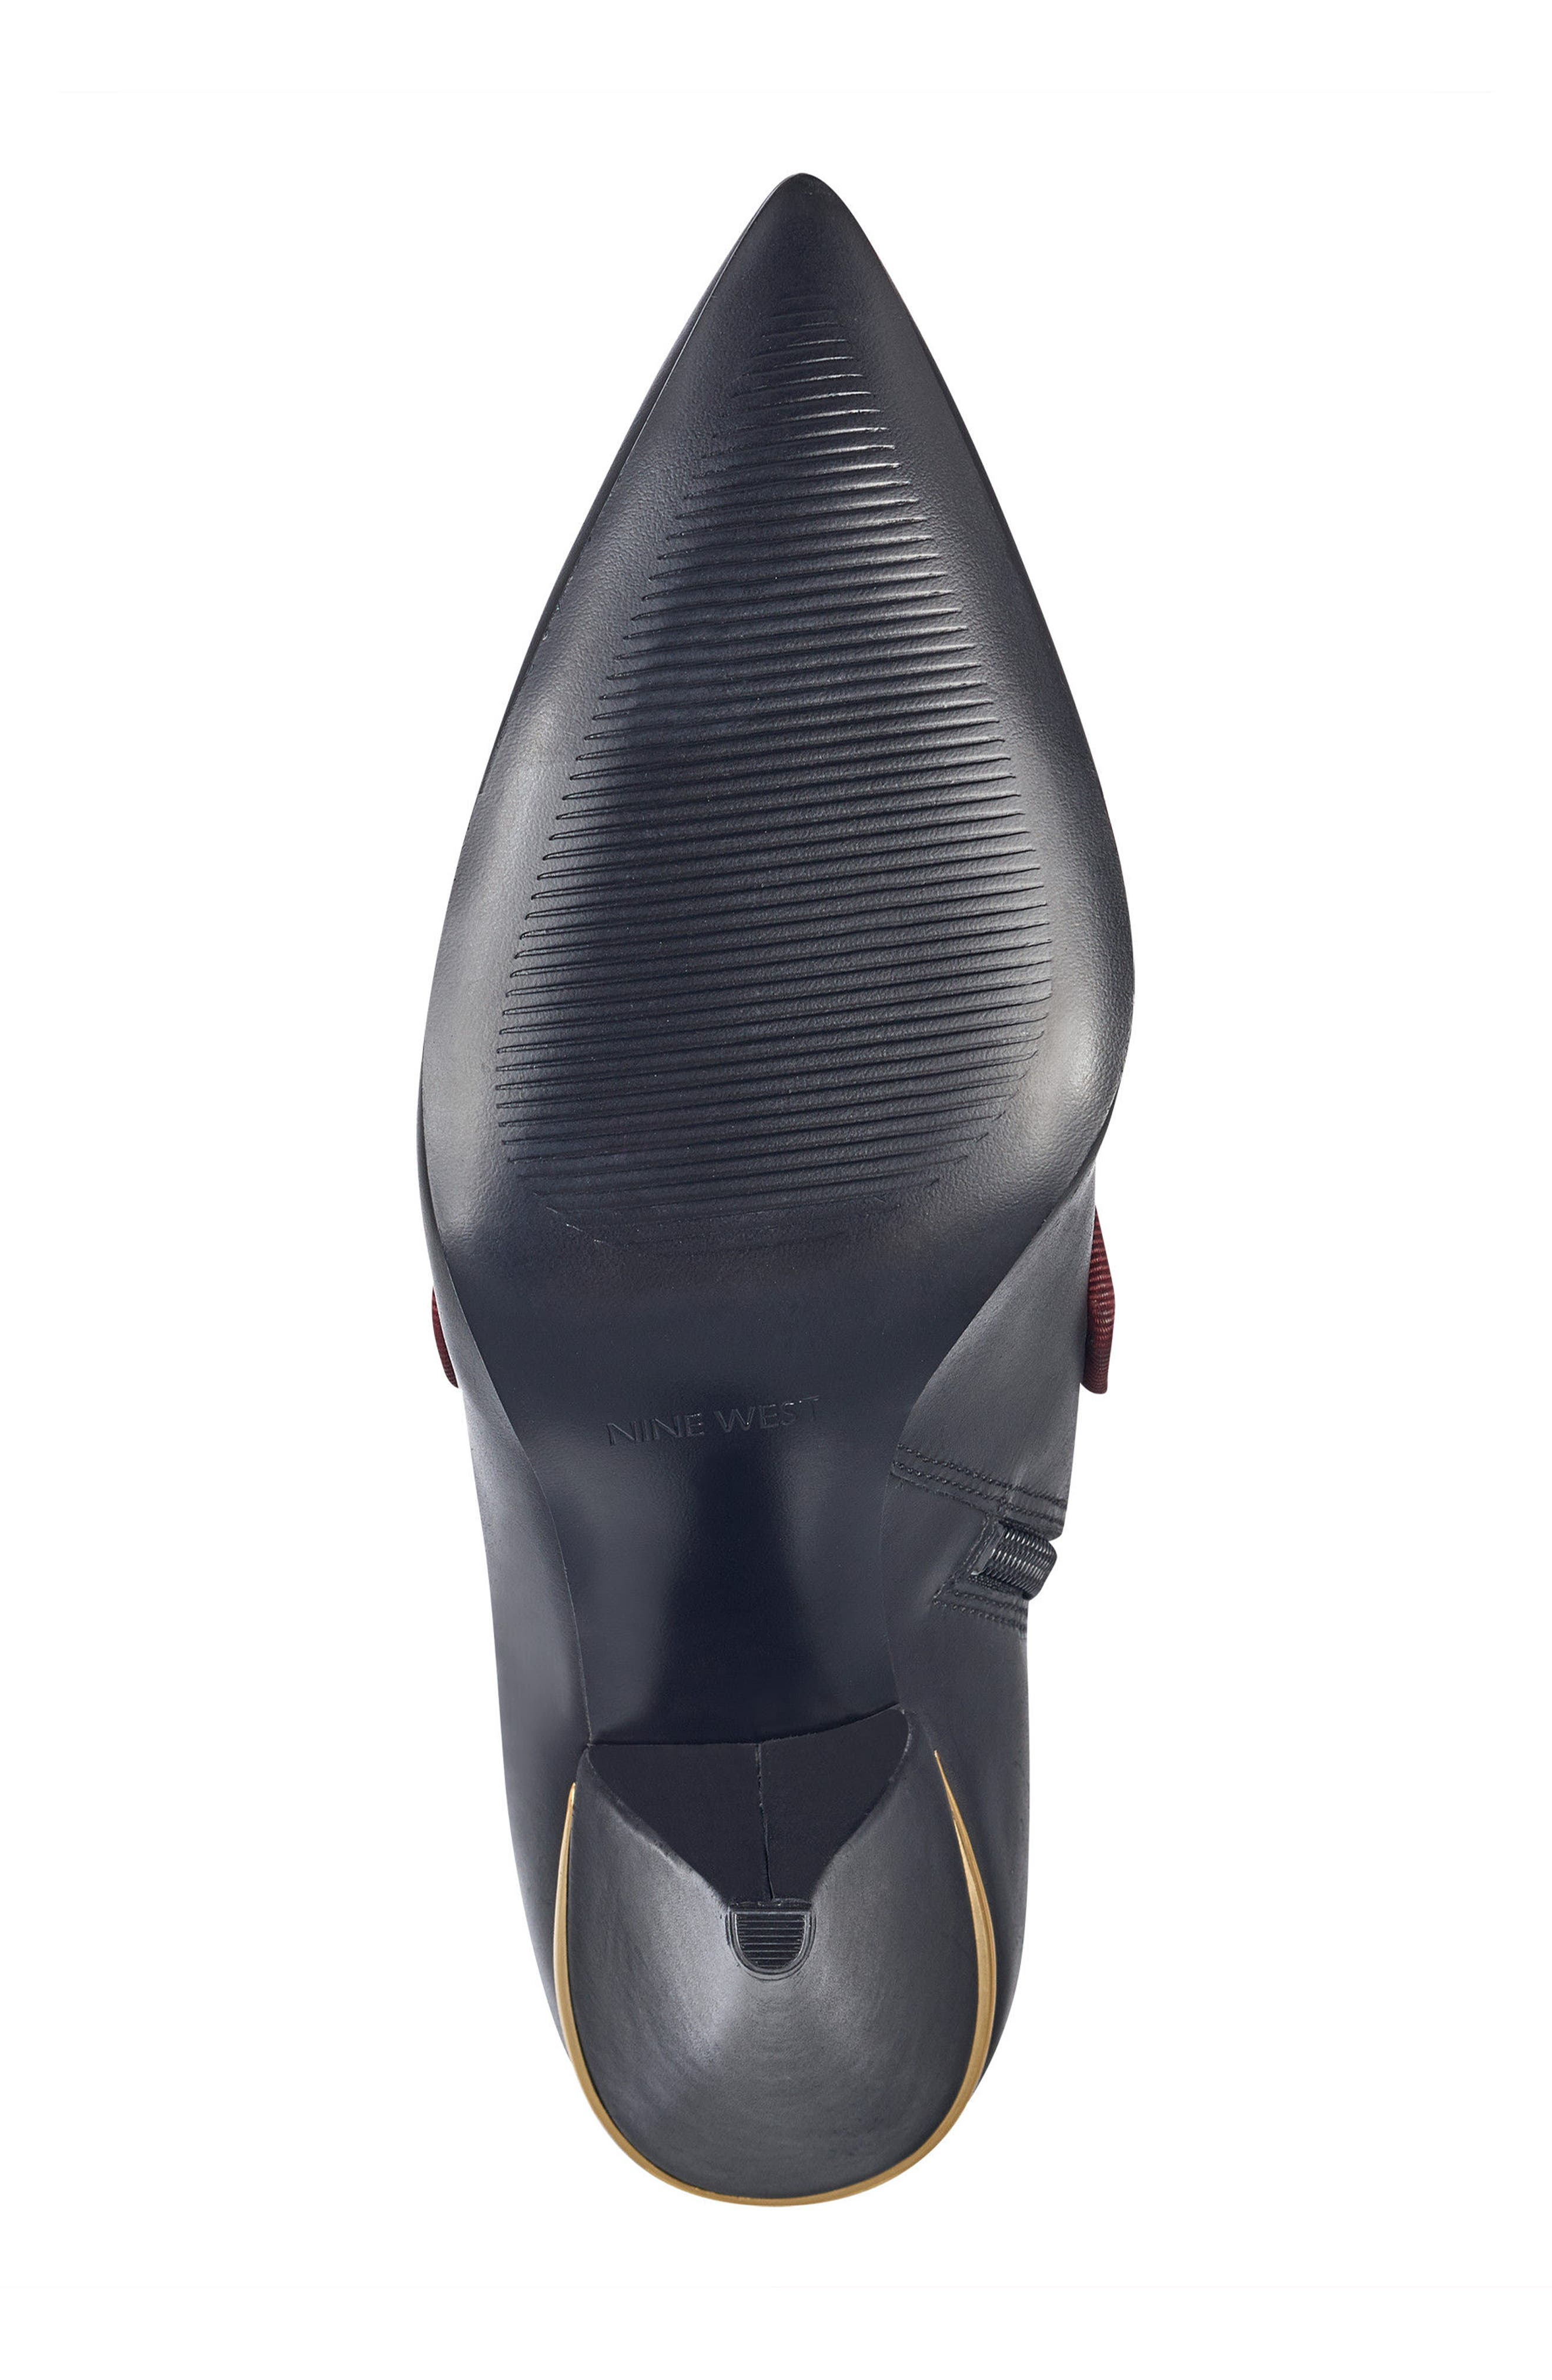 Westham Pointy Toe Bootie,                             Alternate thumbnail 6, color,                             001